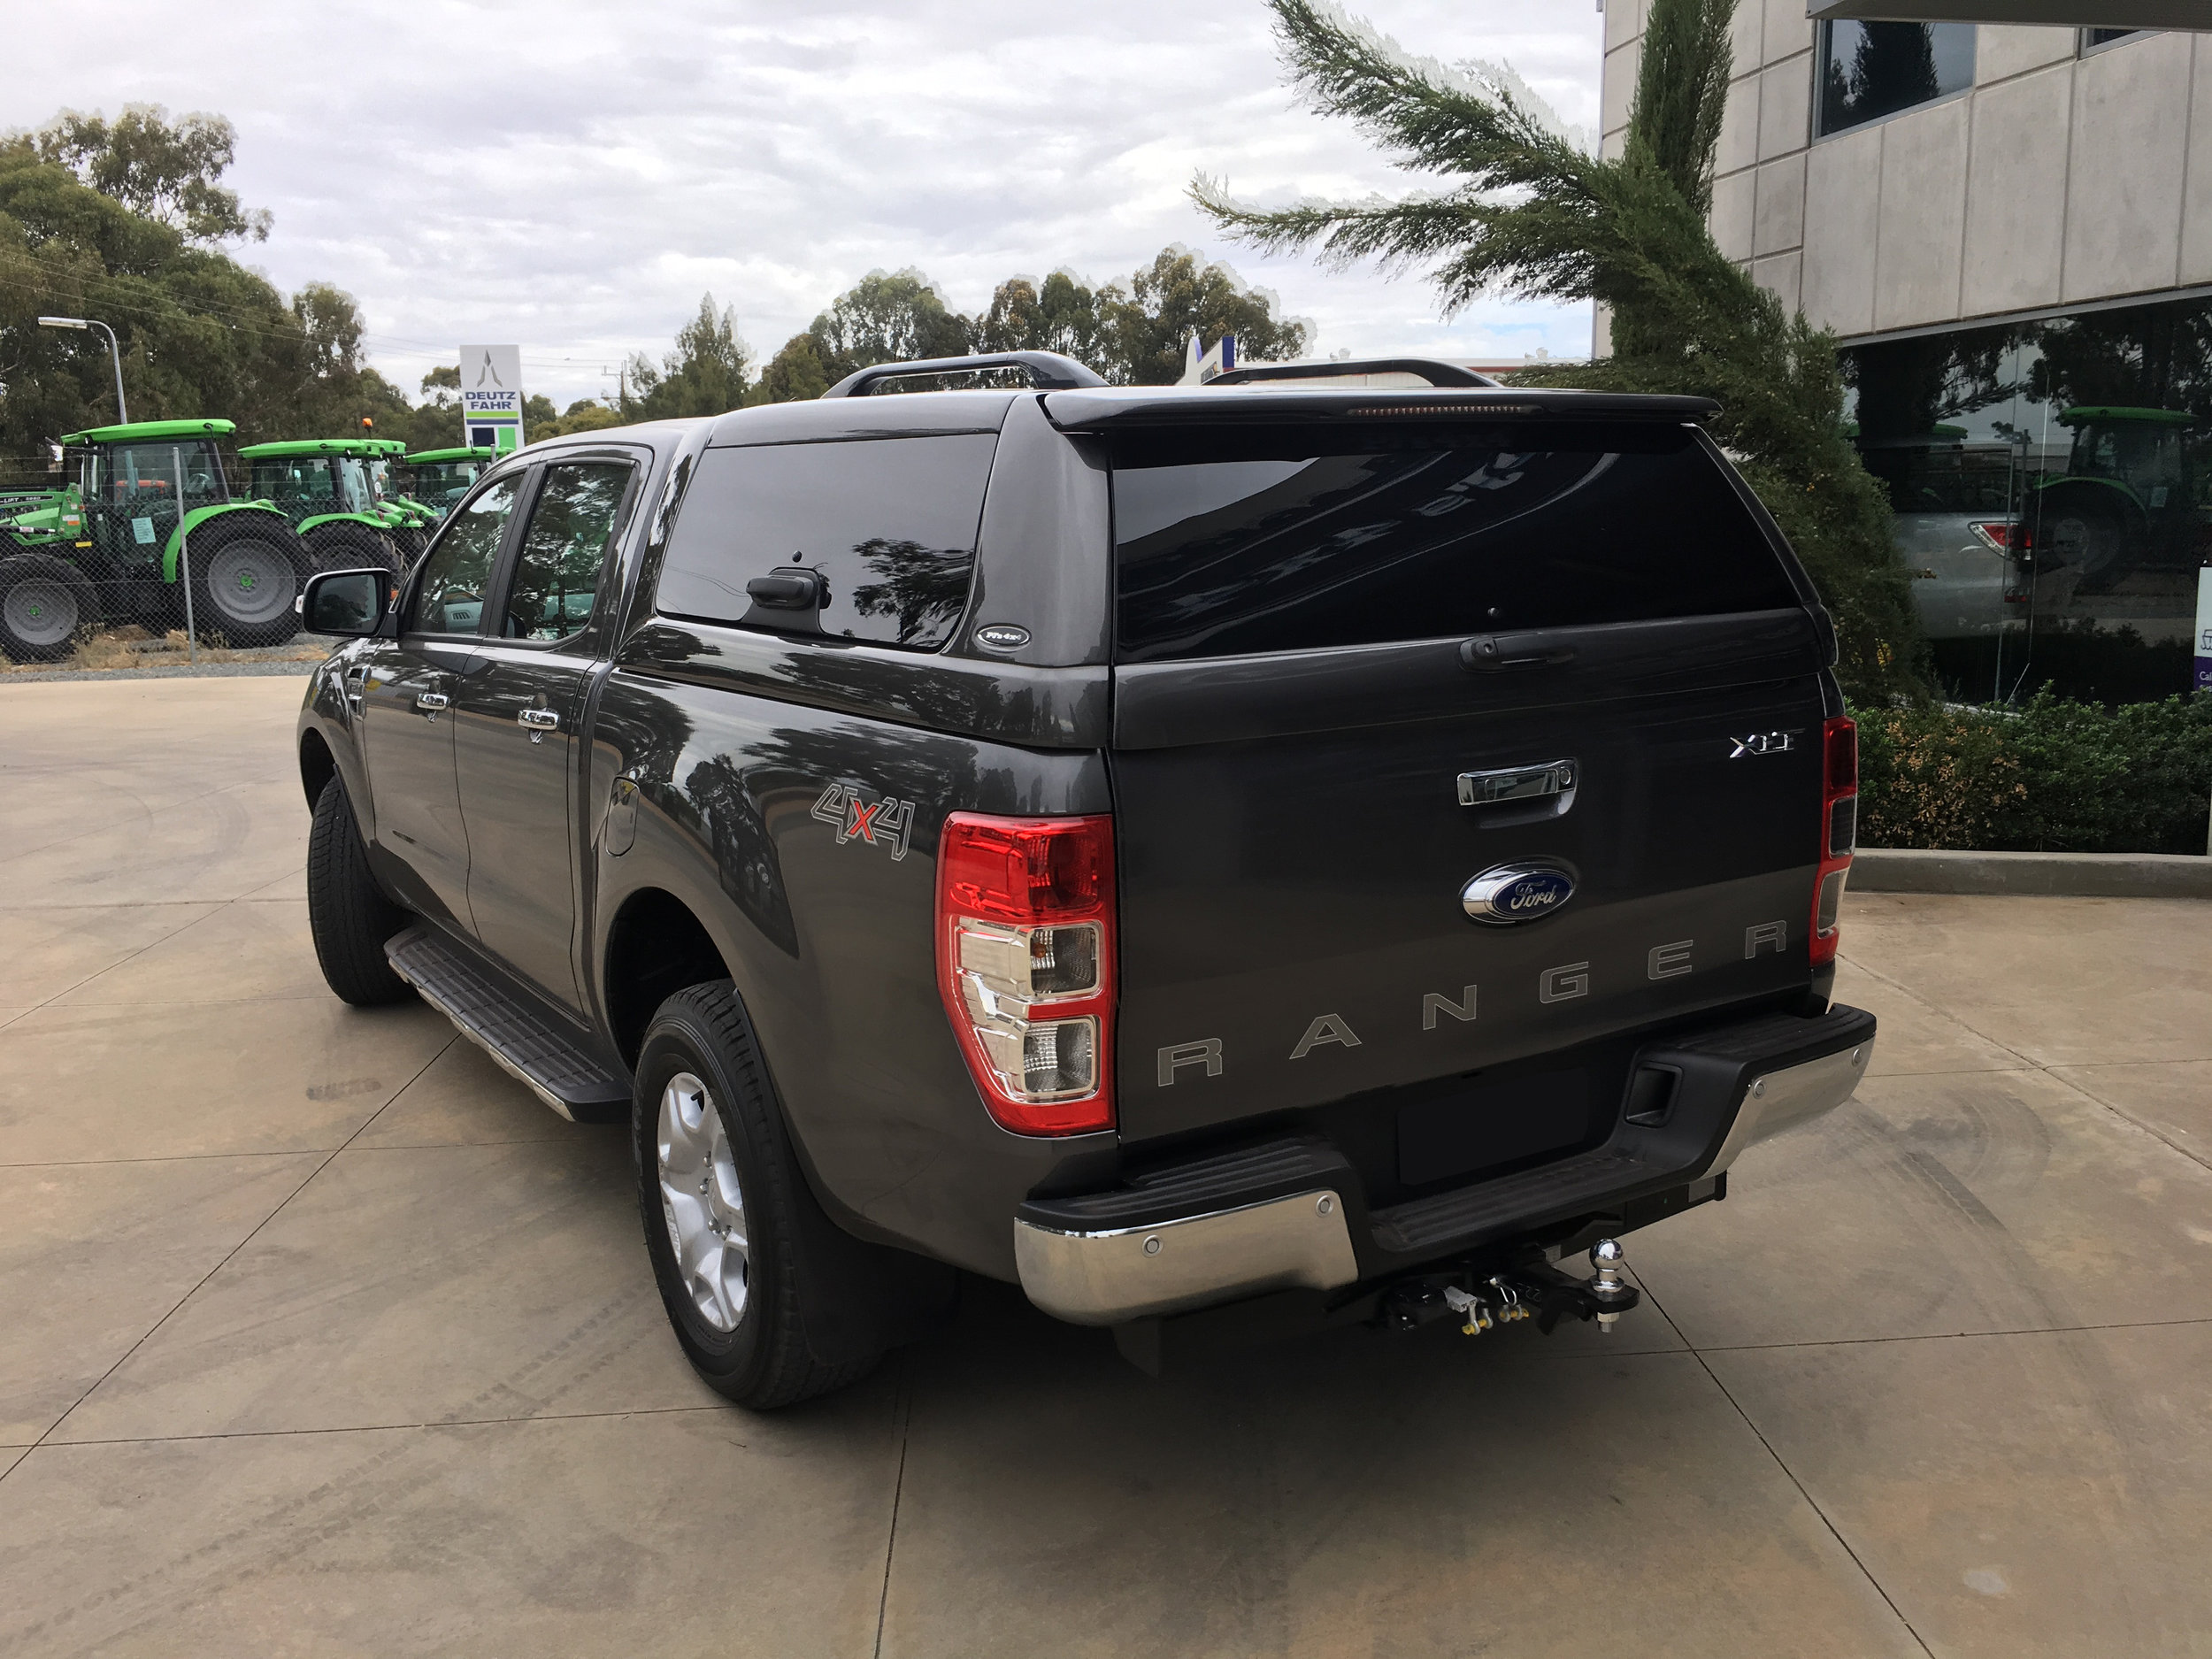 Ford Ranger ELITE Magnetic Grey 105.JPG